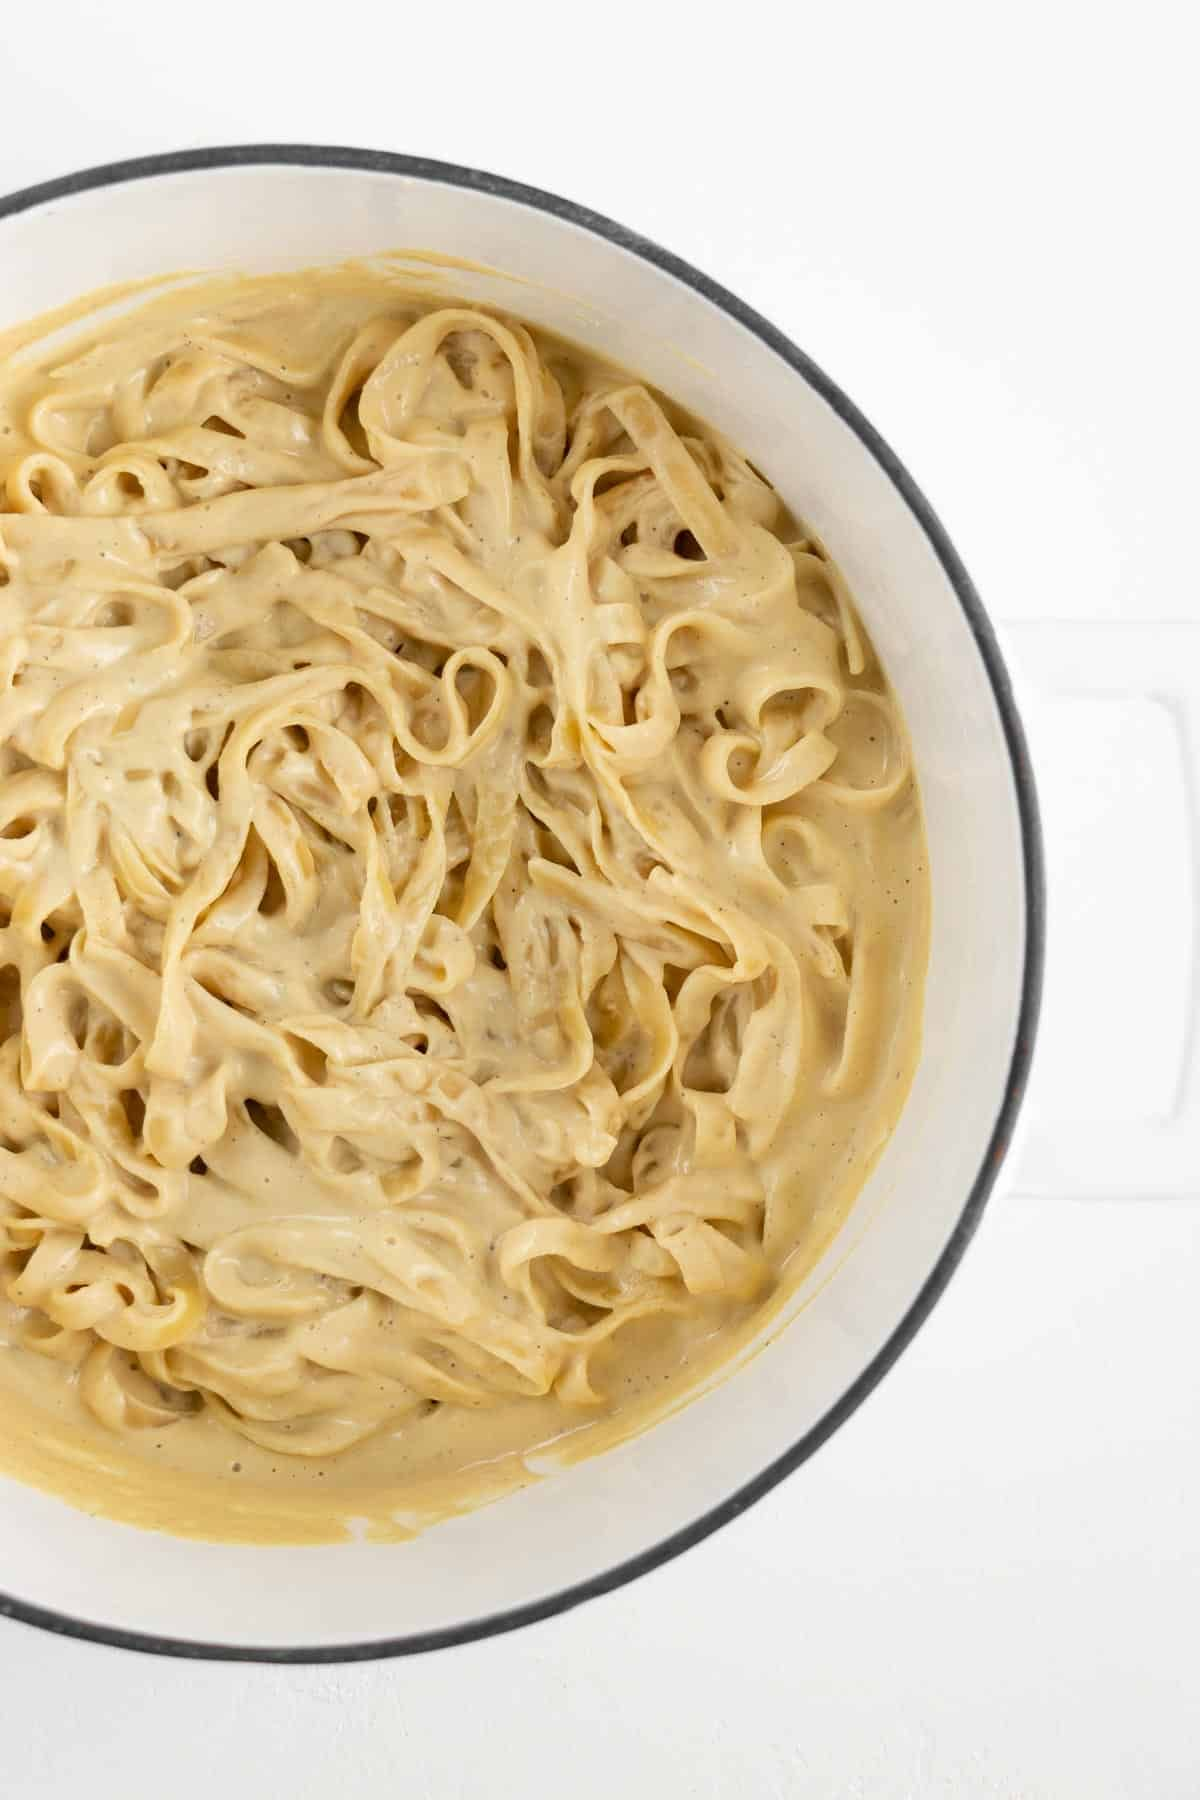 The Best Vegan Fettuccine Alfredo Pasta That S Creamy Healthy And So Easy To Make The Dairy In 2020 Vegan Fettuccine Alfredo Vegan Alfredo Dairy Free Alfredo Sauce